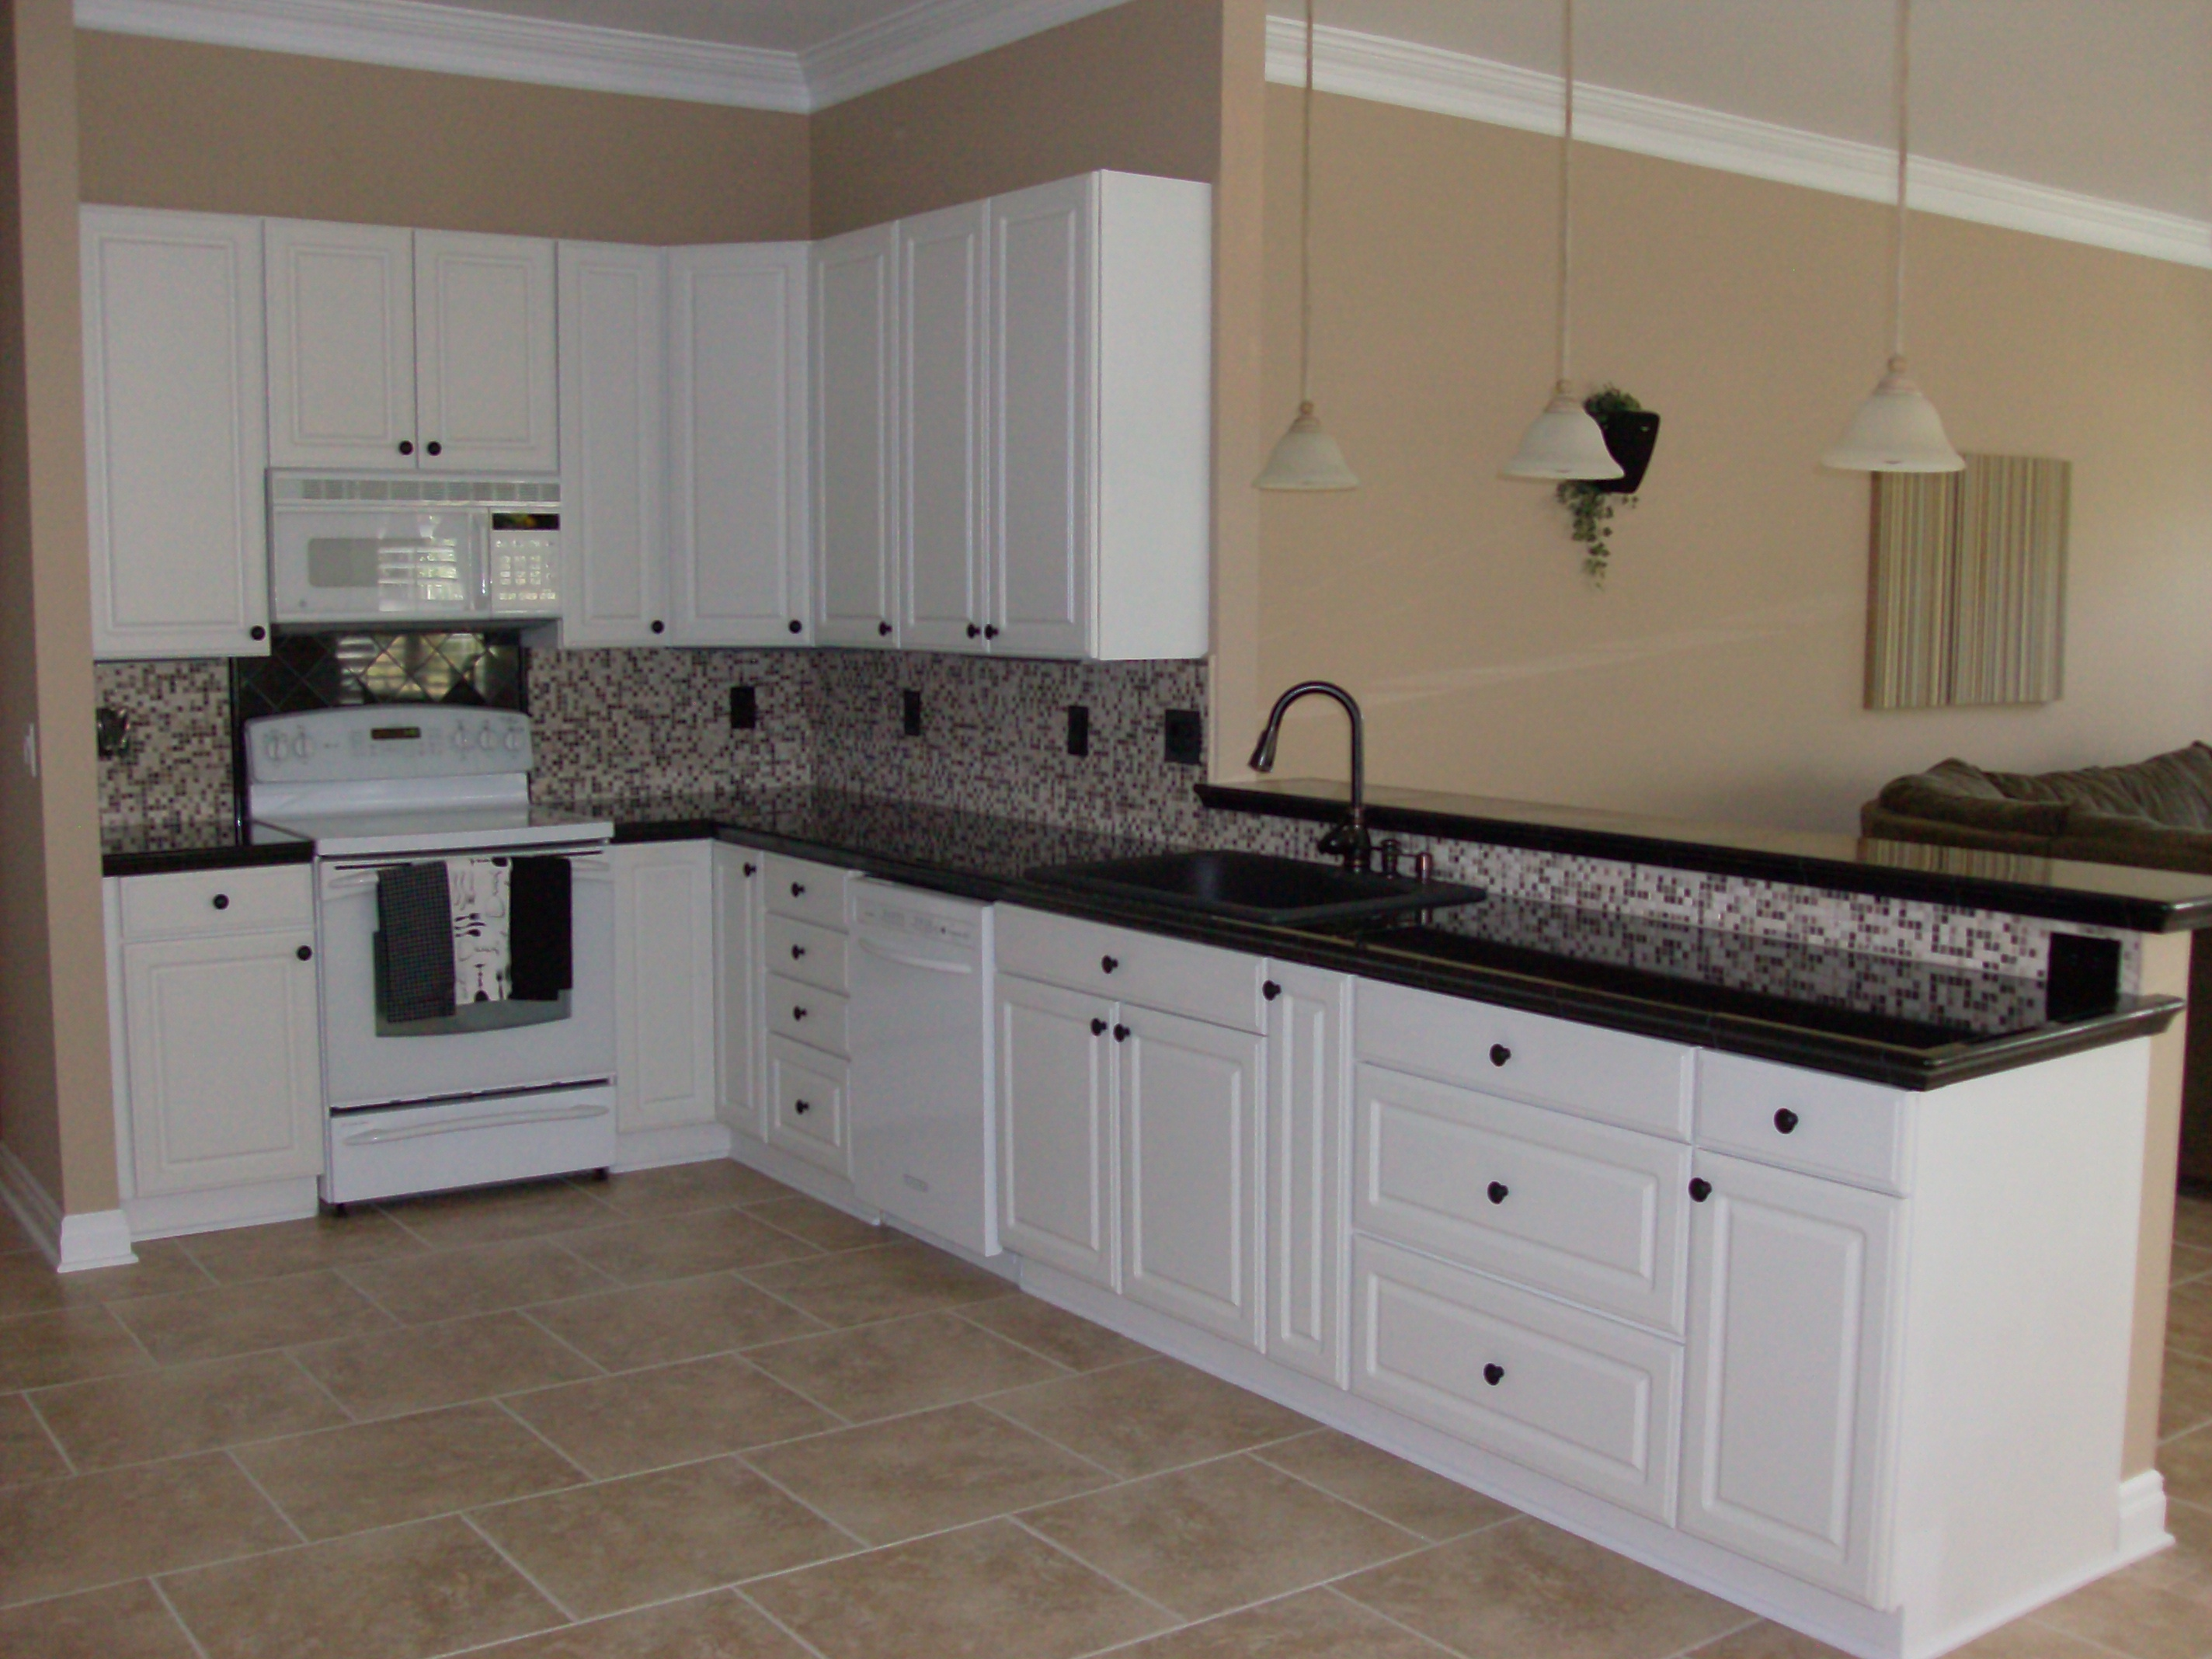 Cabinets, Counter Tops, Lighting, Tile. Kitchen Remodel, Lake St. Louis, MO  ...